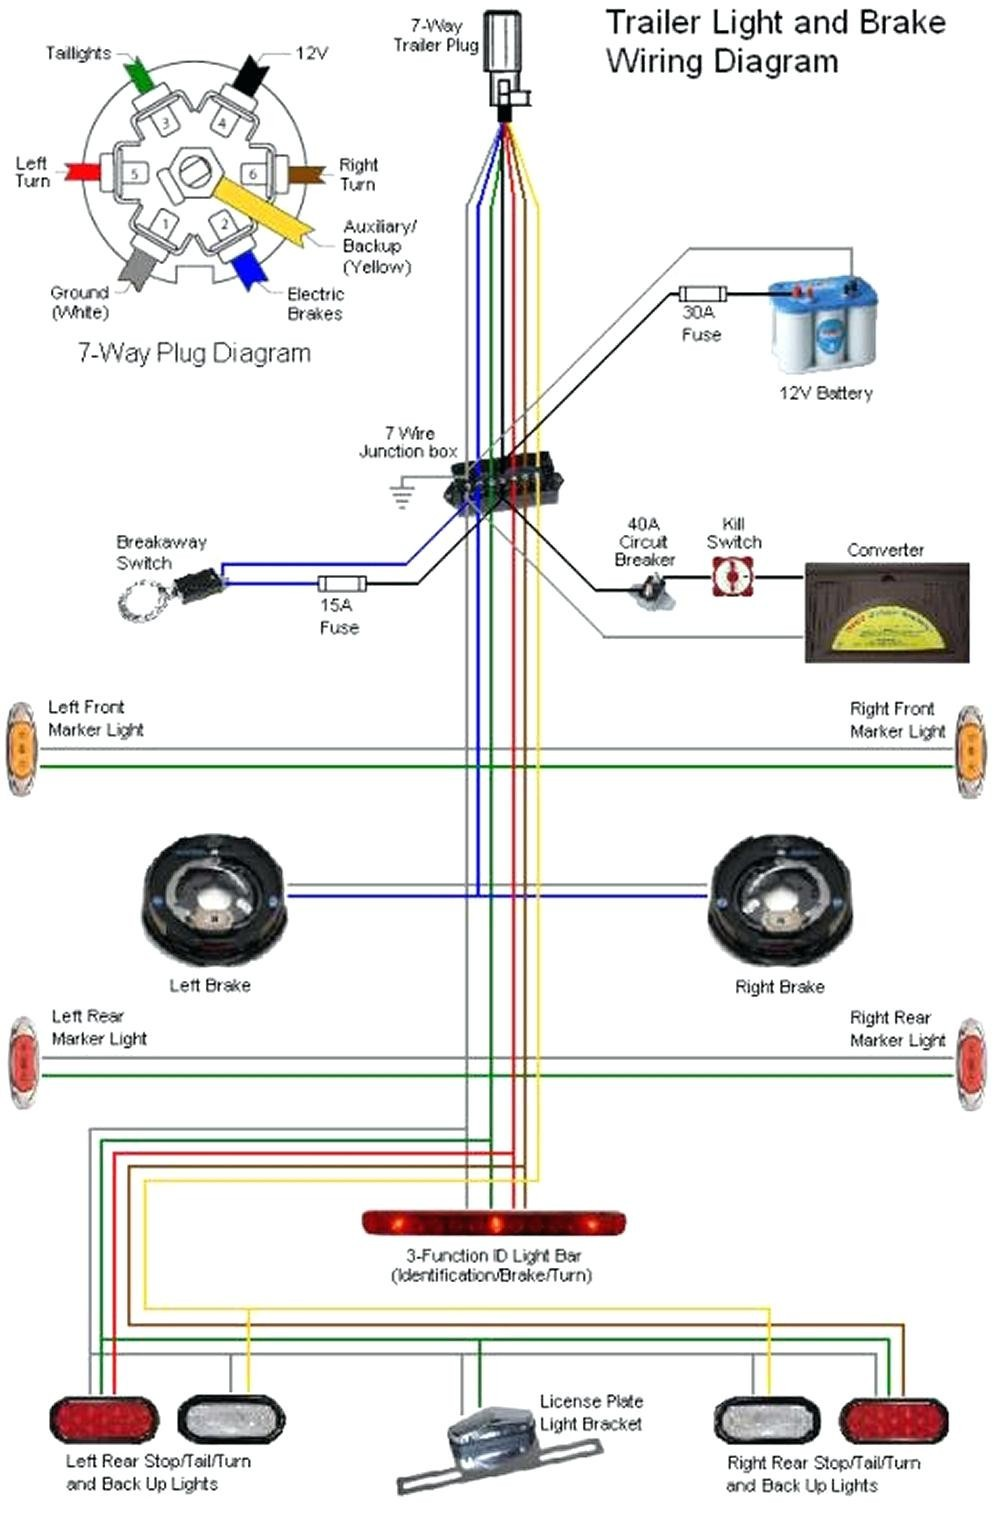 7 Way Trailer Plug Wiring Diagram ford Elegant | Wiring Diagram Image